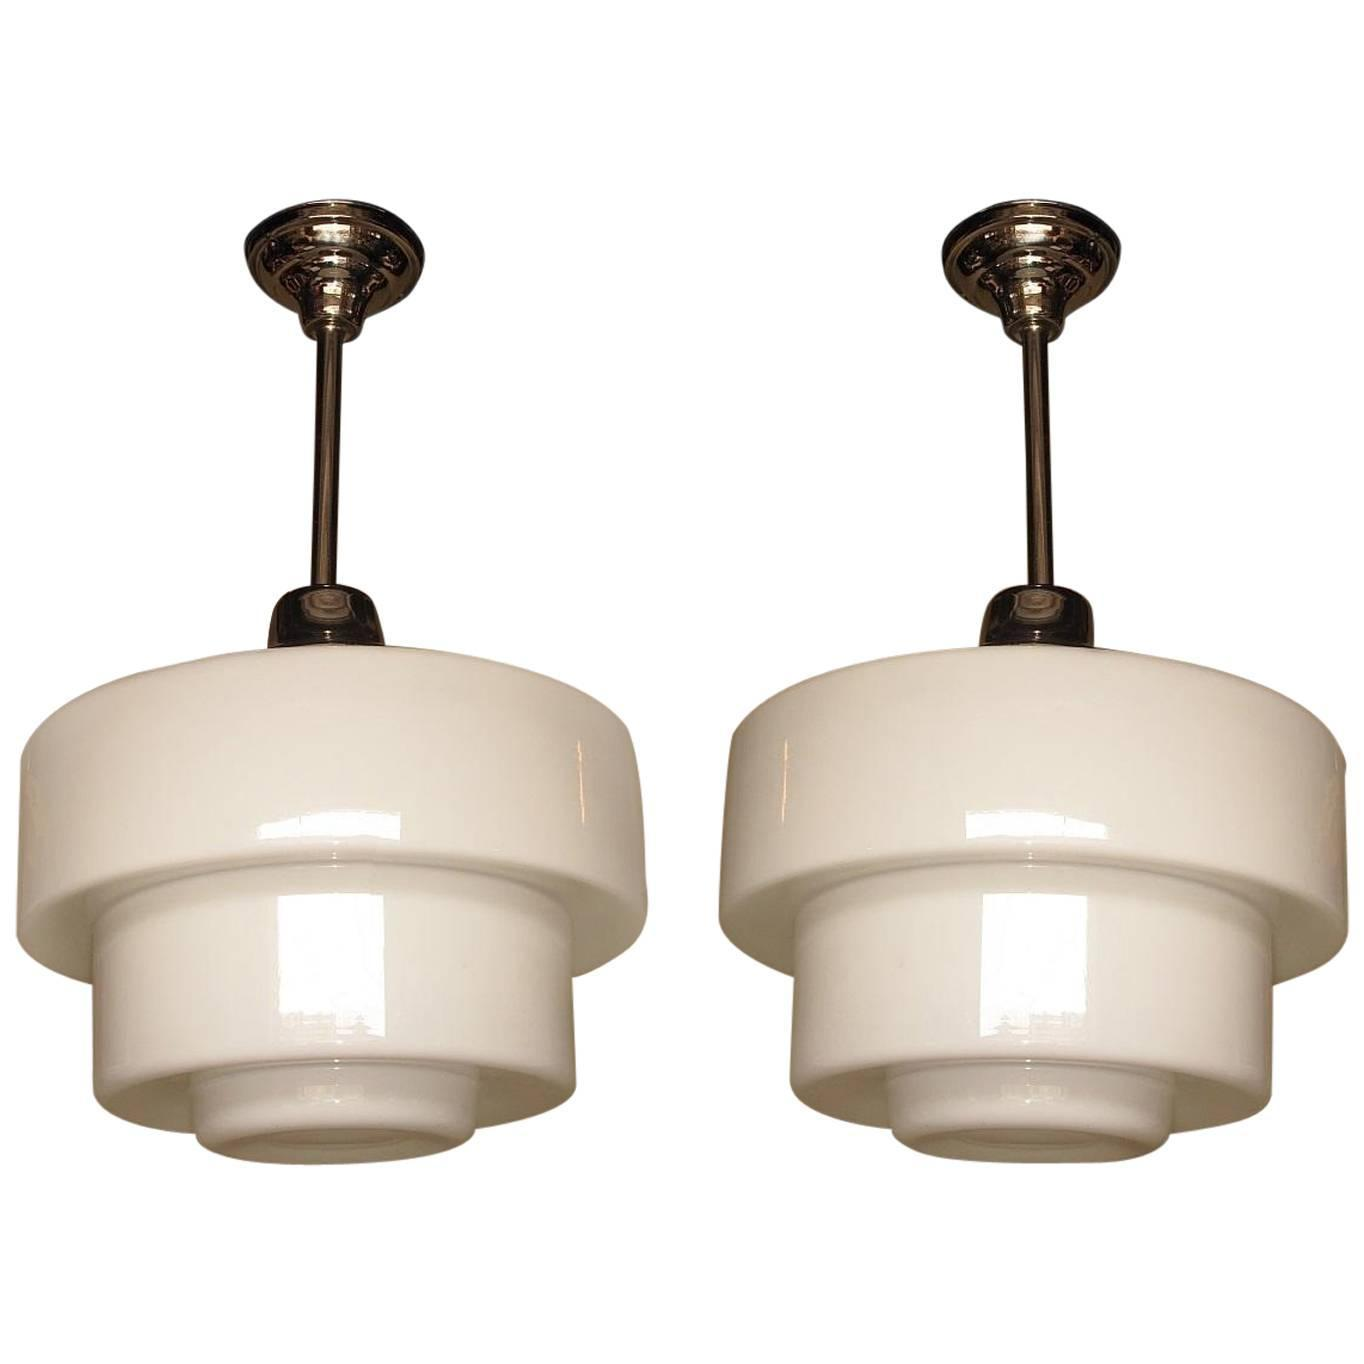 Huge 1920s Schoolhouse Electric Lighting Fixtures At 1stdibs